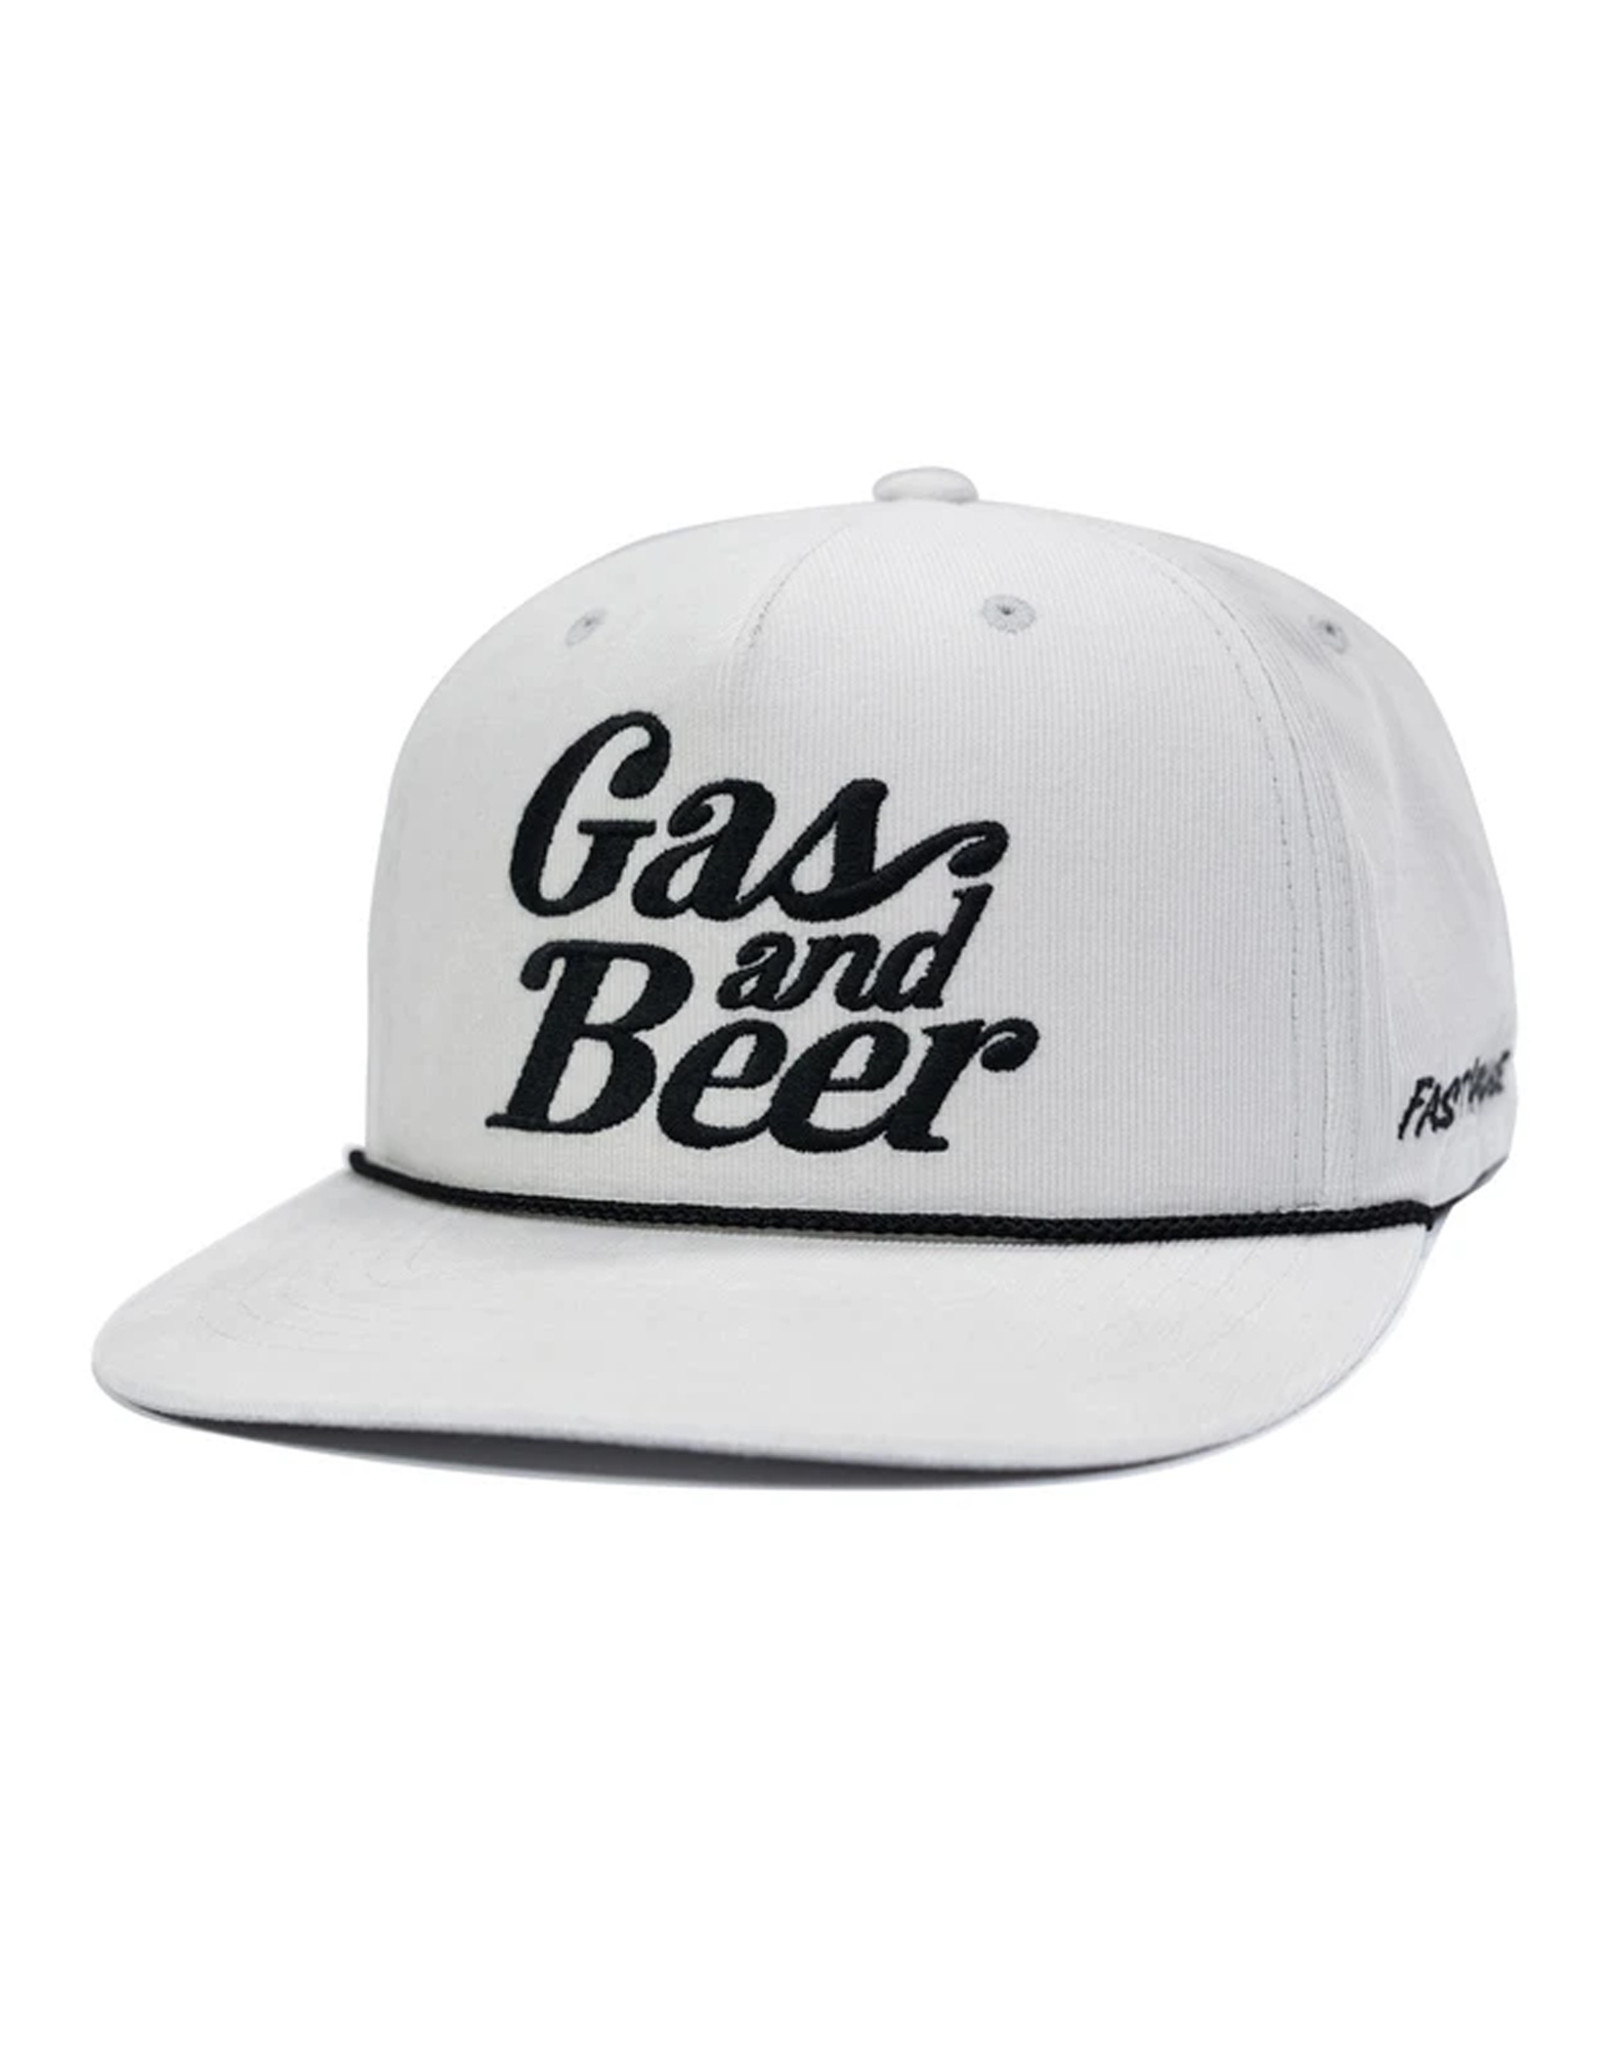 fasthouse Fasthouse 805 Tavern Hat